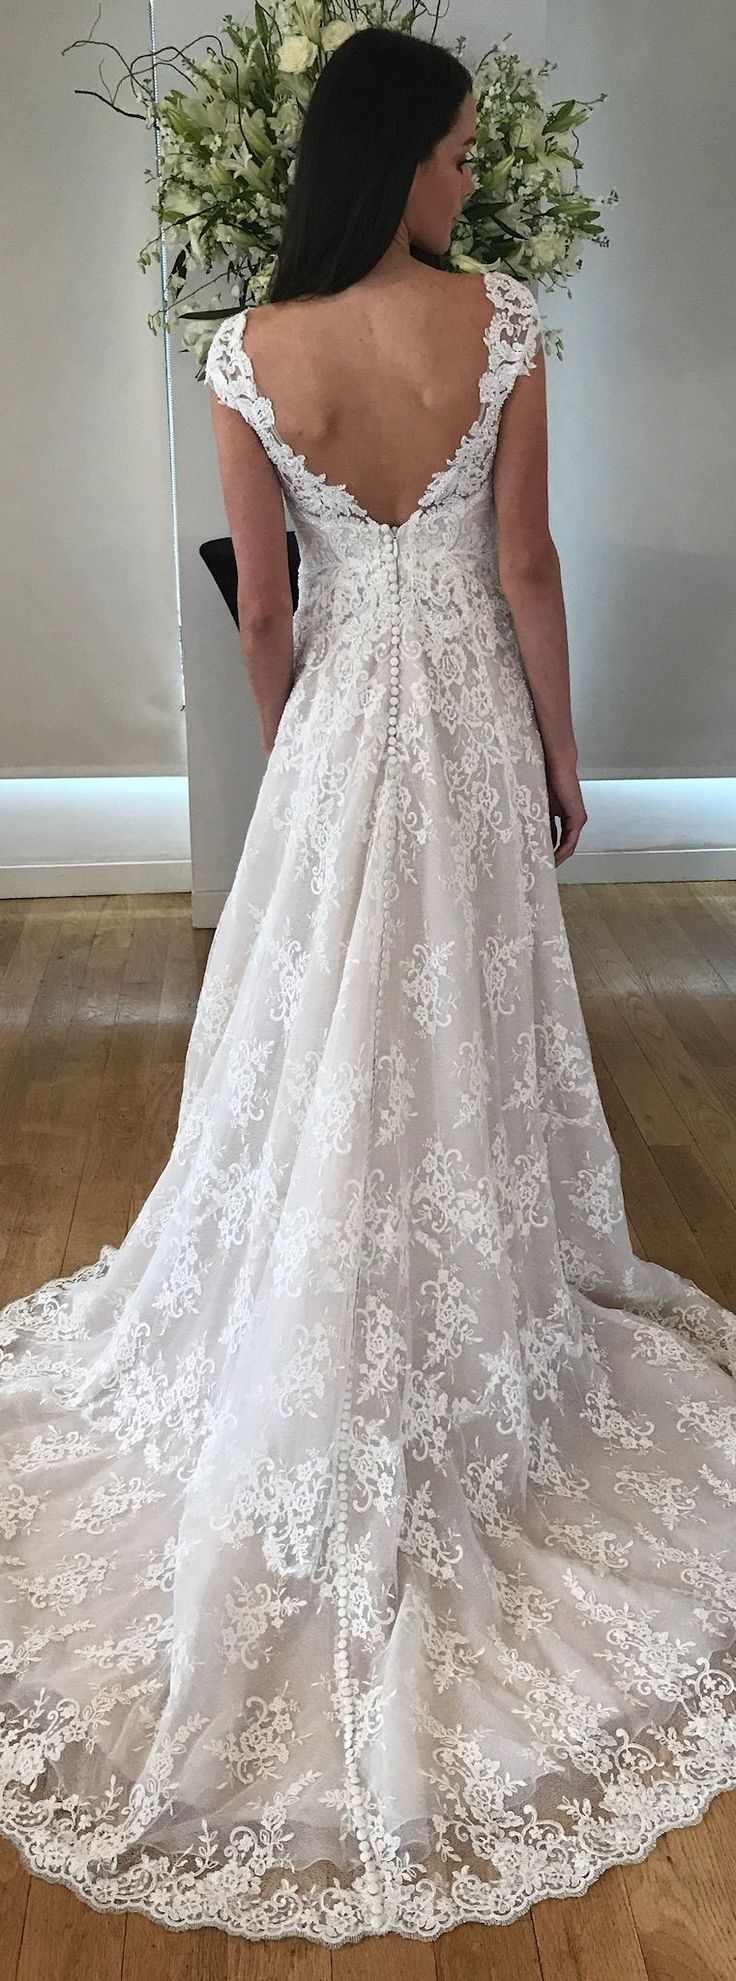 Cyrus wedding dress by Kelly Faetanini // Textured tulle champagne ball gown with beaded embroidered cap sleeve illusion neckline